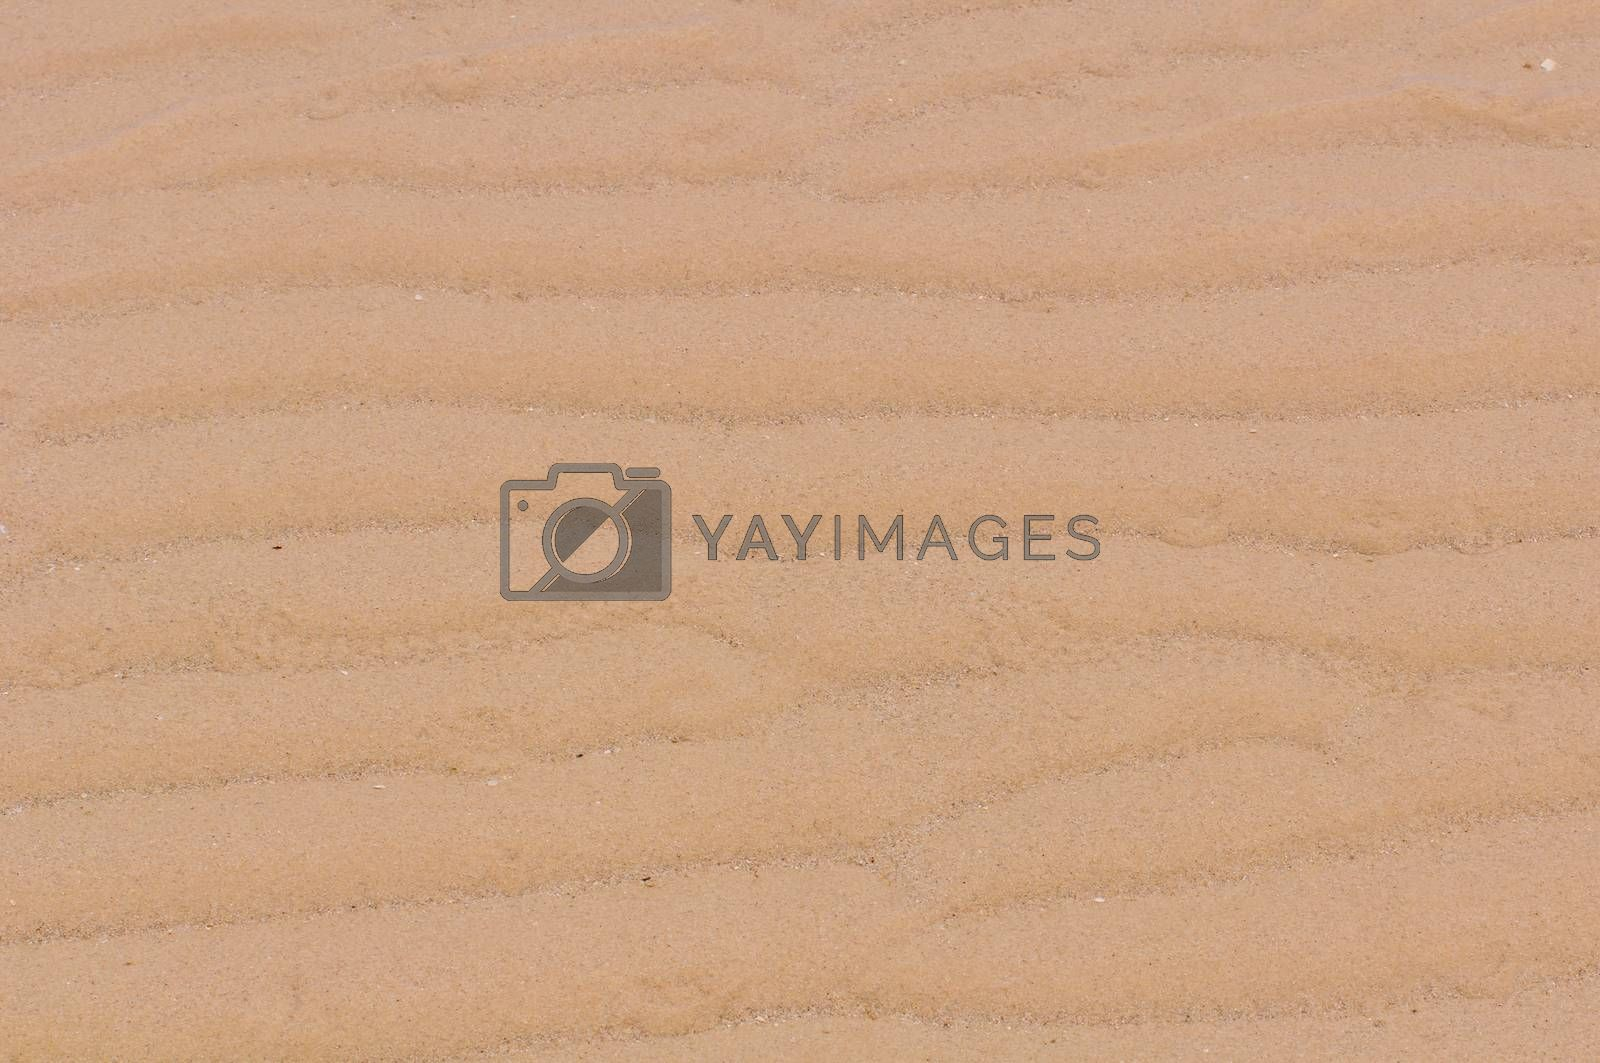 Royalty free image of The beach sand background by Sorapop